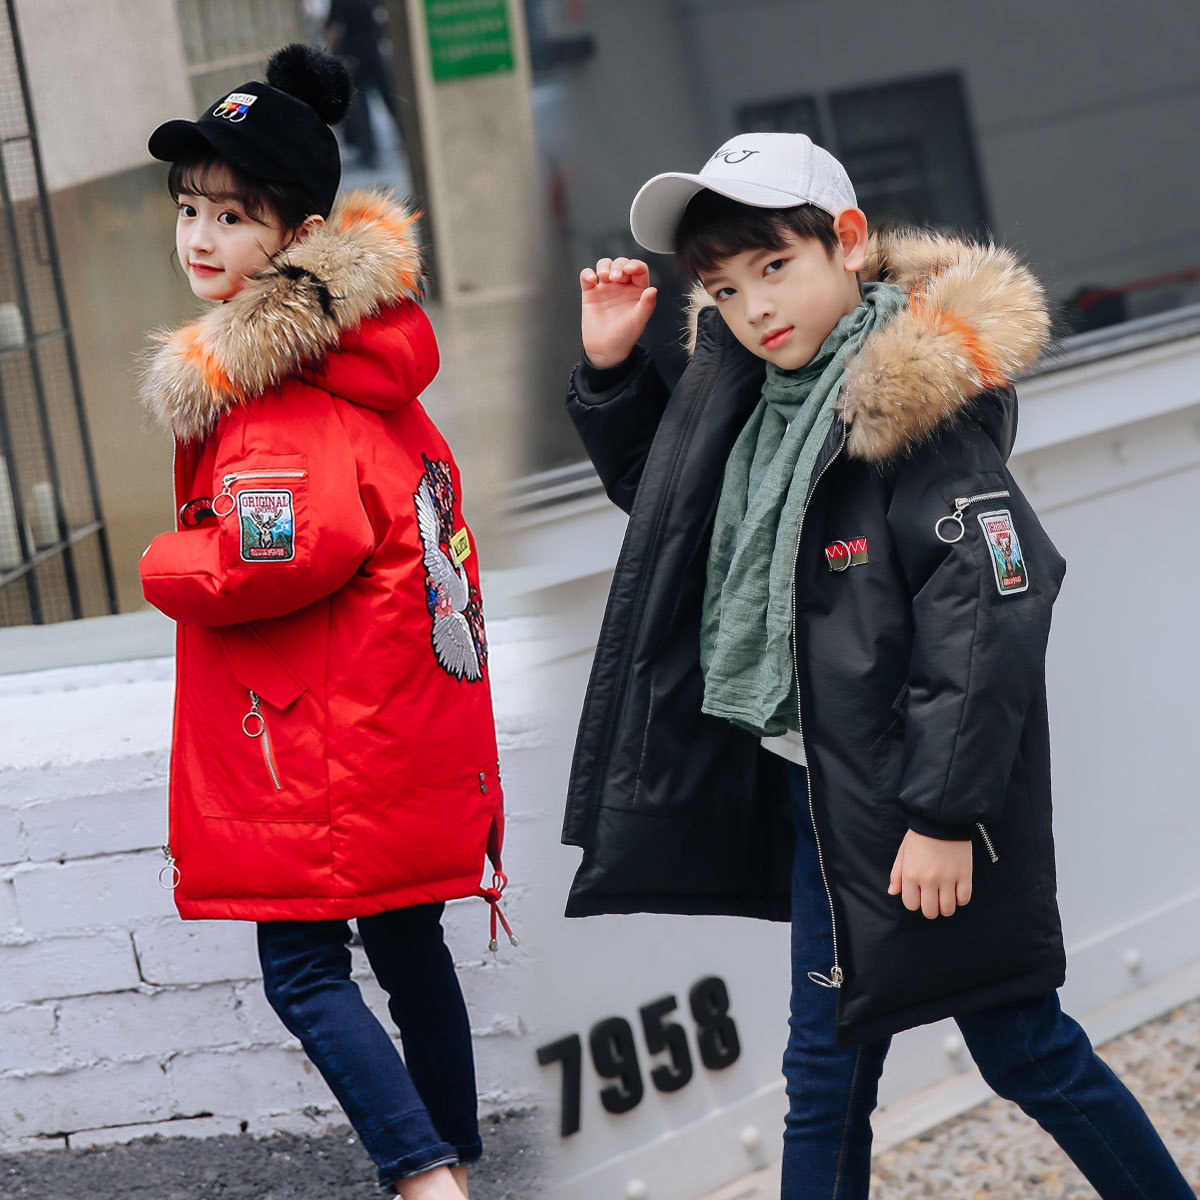 купить 2018 winter down jacket parka for girls boys coats , 90% down jackets children's clothing for snow wear kids outerwear & coats по цене 3738.05 рублей